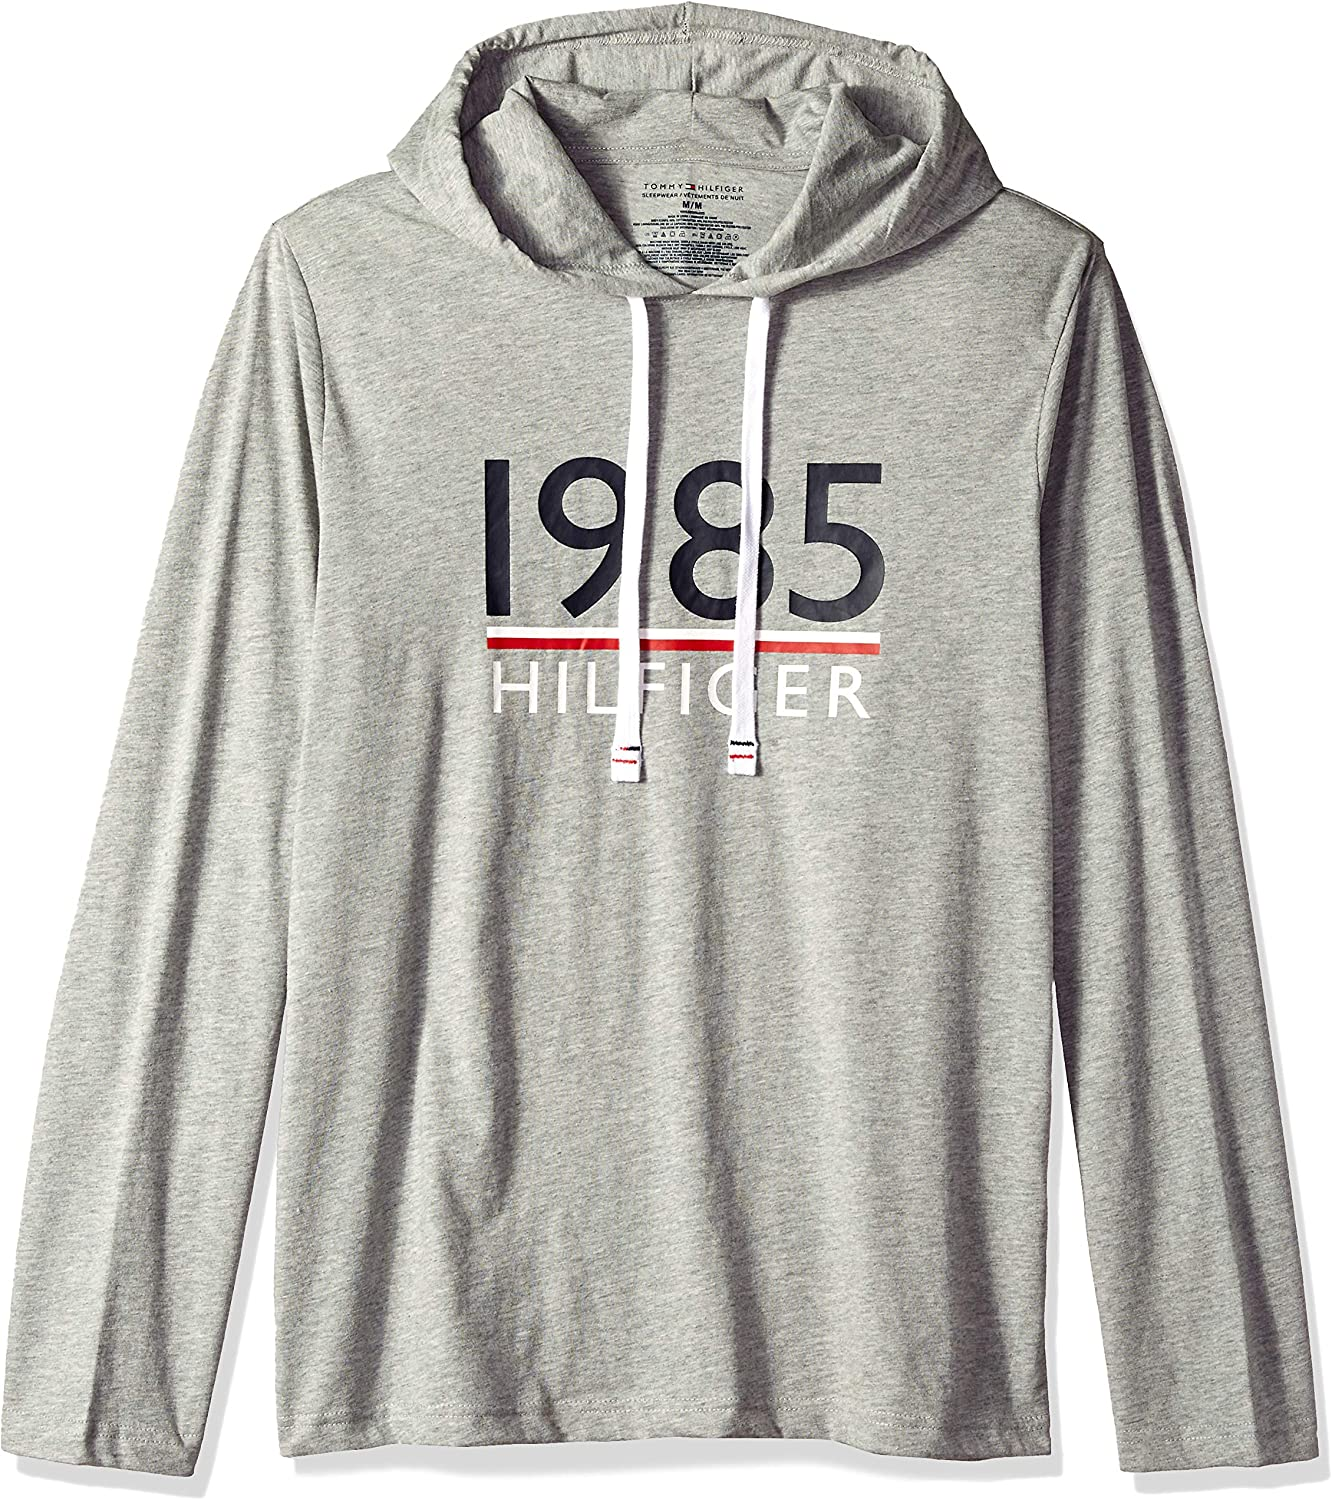 Tommy Hilfiger Men's Modern Essentials Sleepwear Hoodie